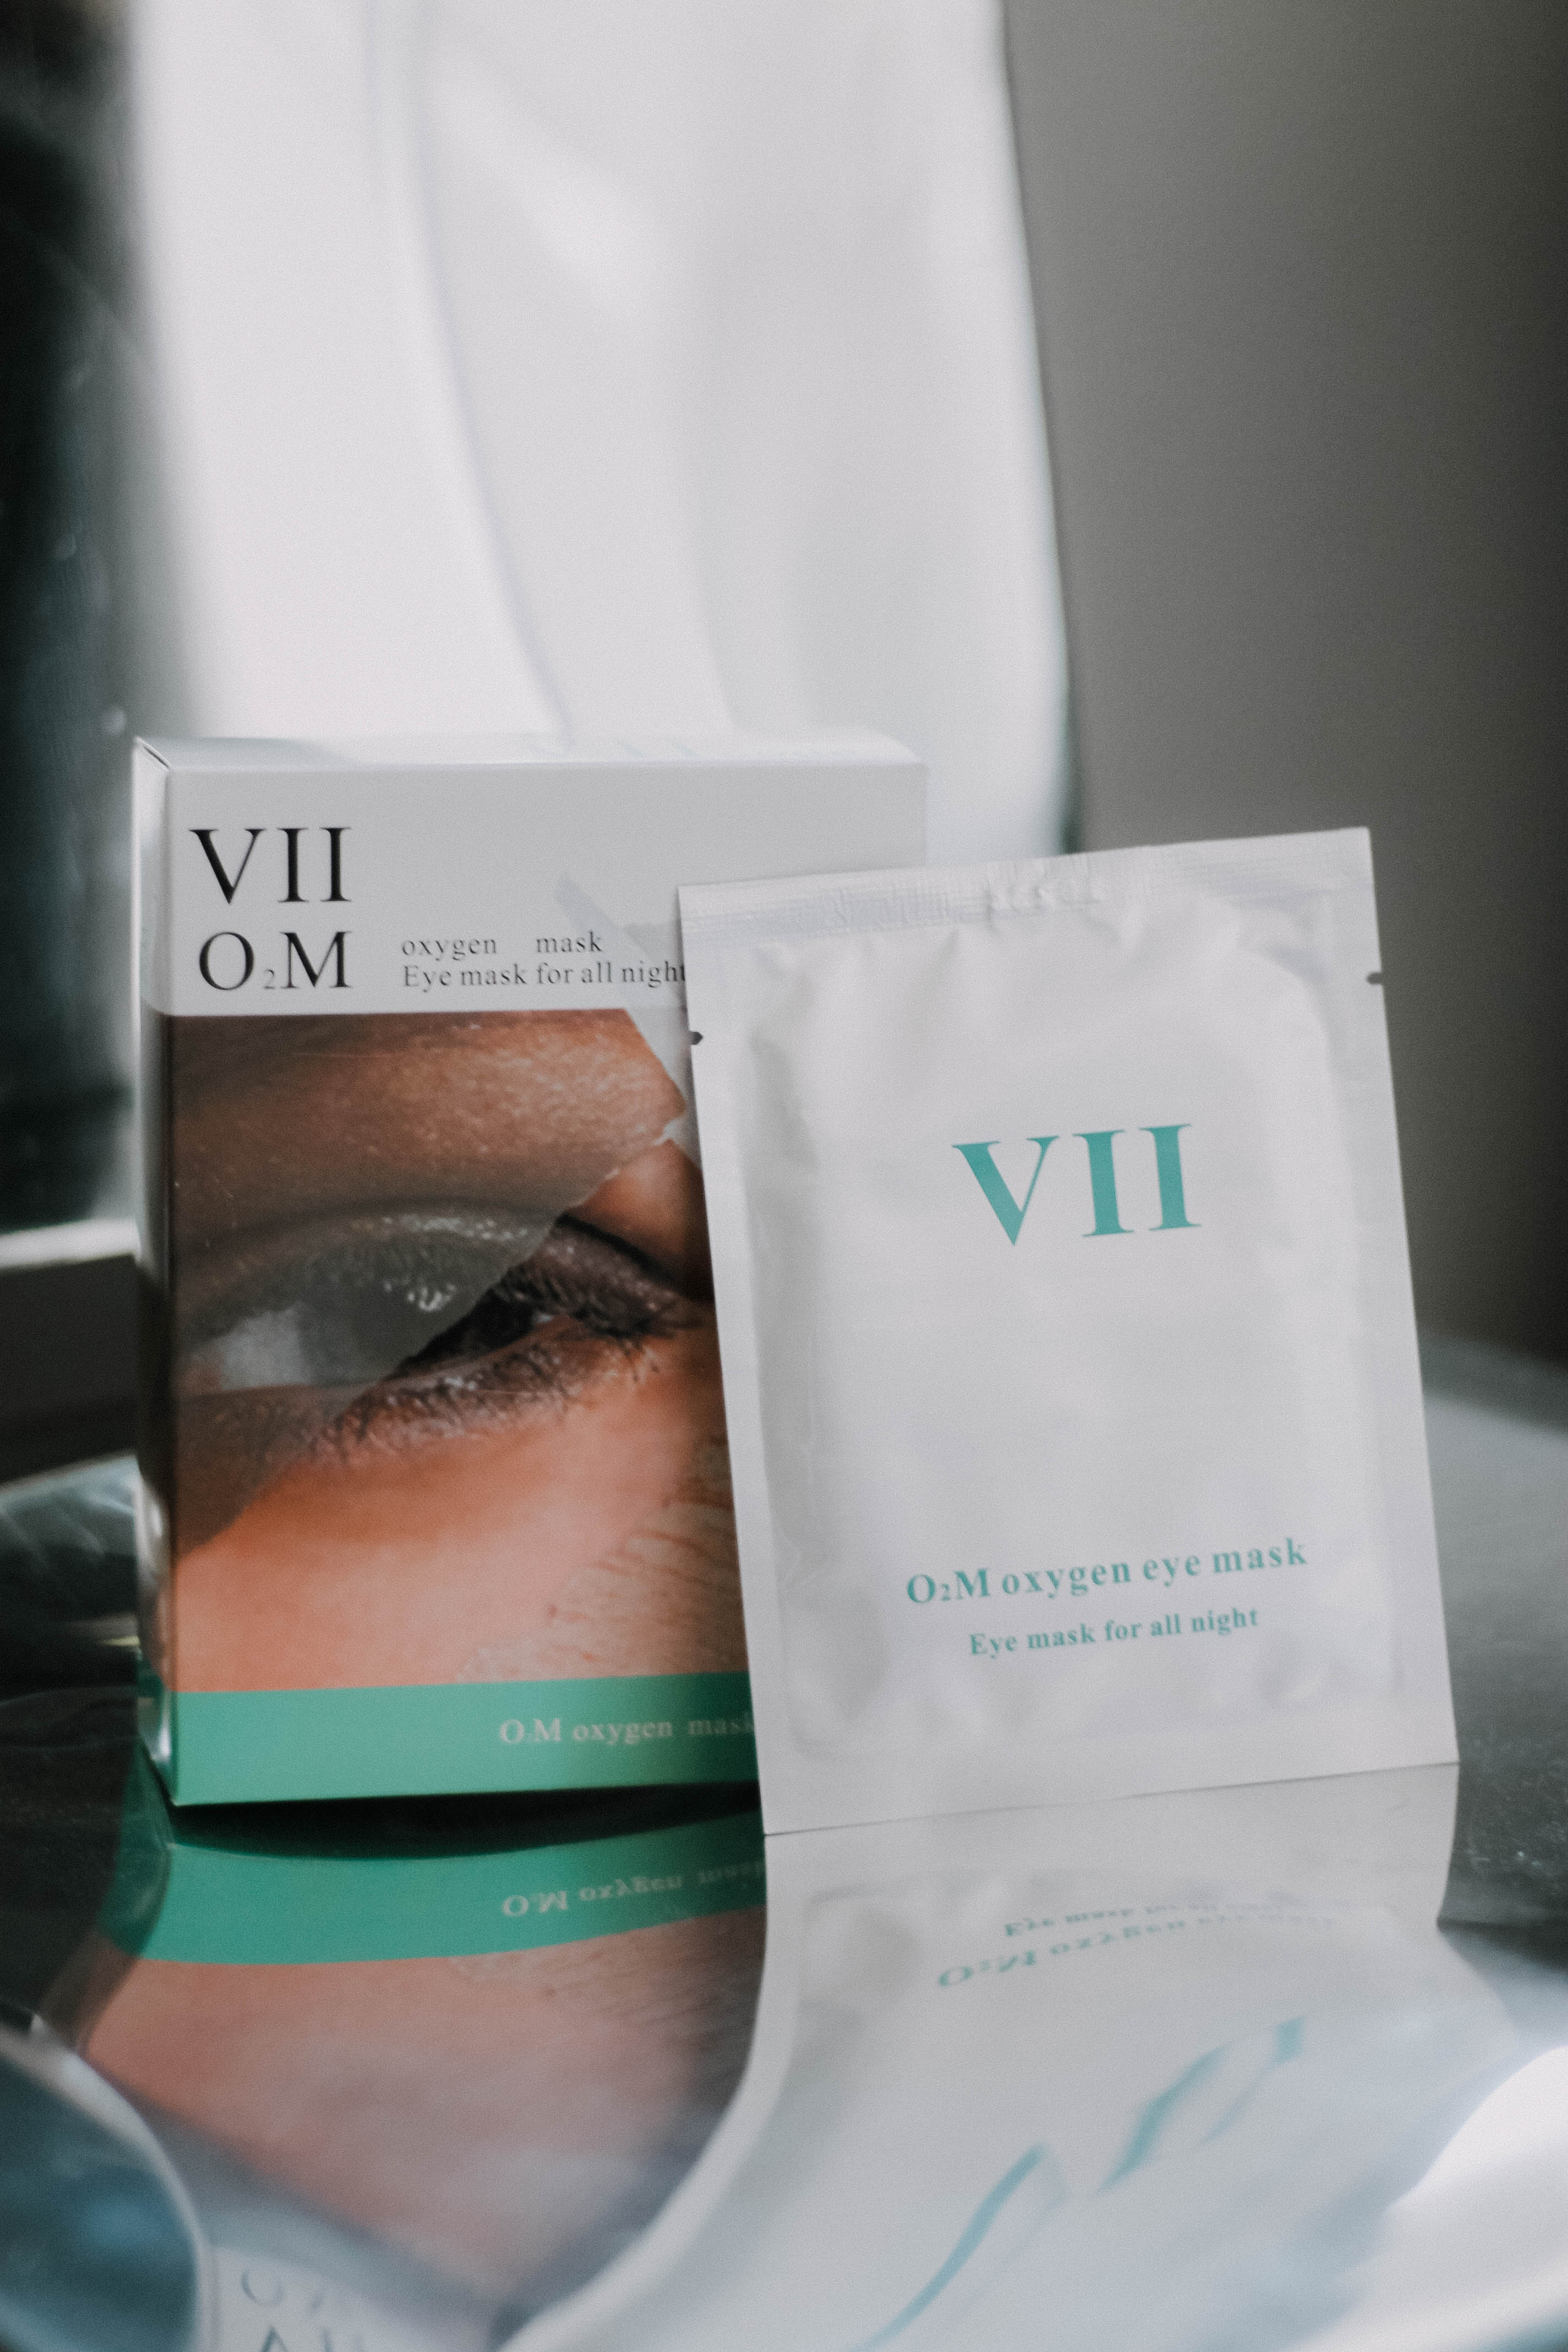 Friday Product Spotlight: VIIcode Oxygen Under Eye Masks